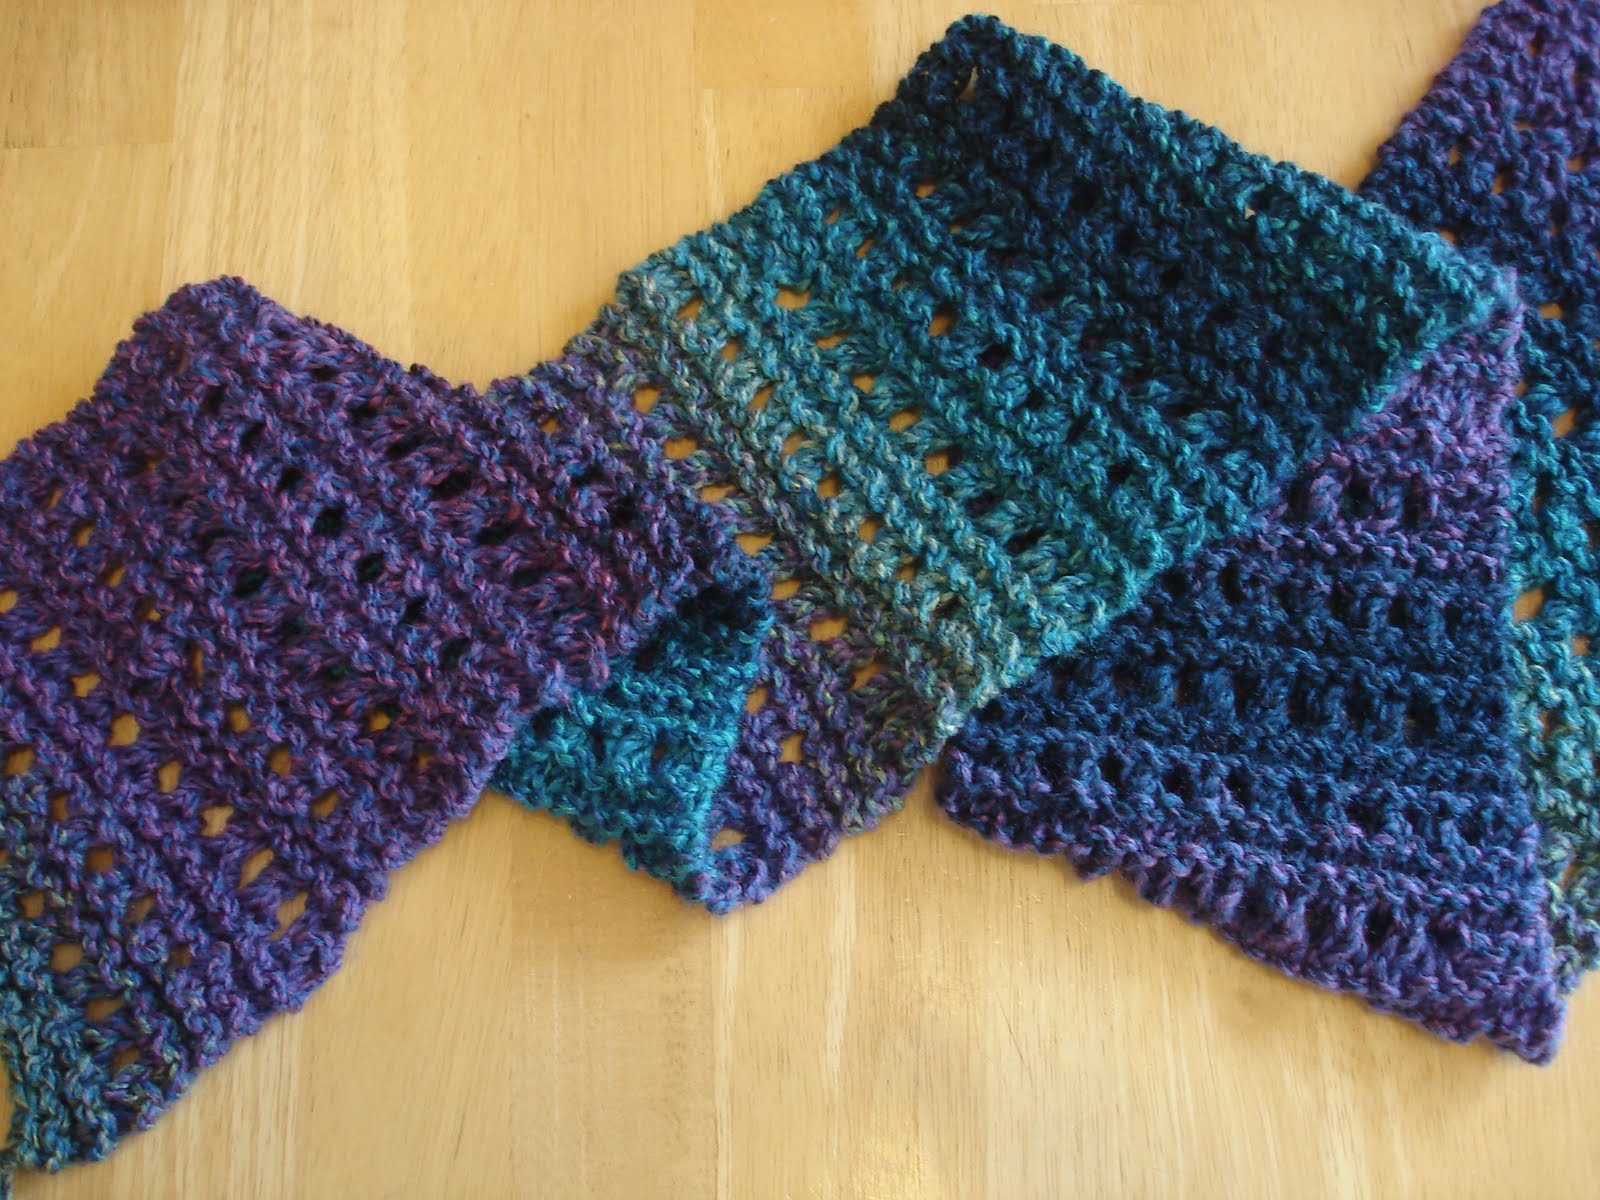 Good Knitting Stitches For Scarves : Fiber Flux: Free Knitting Patterns